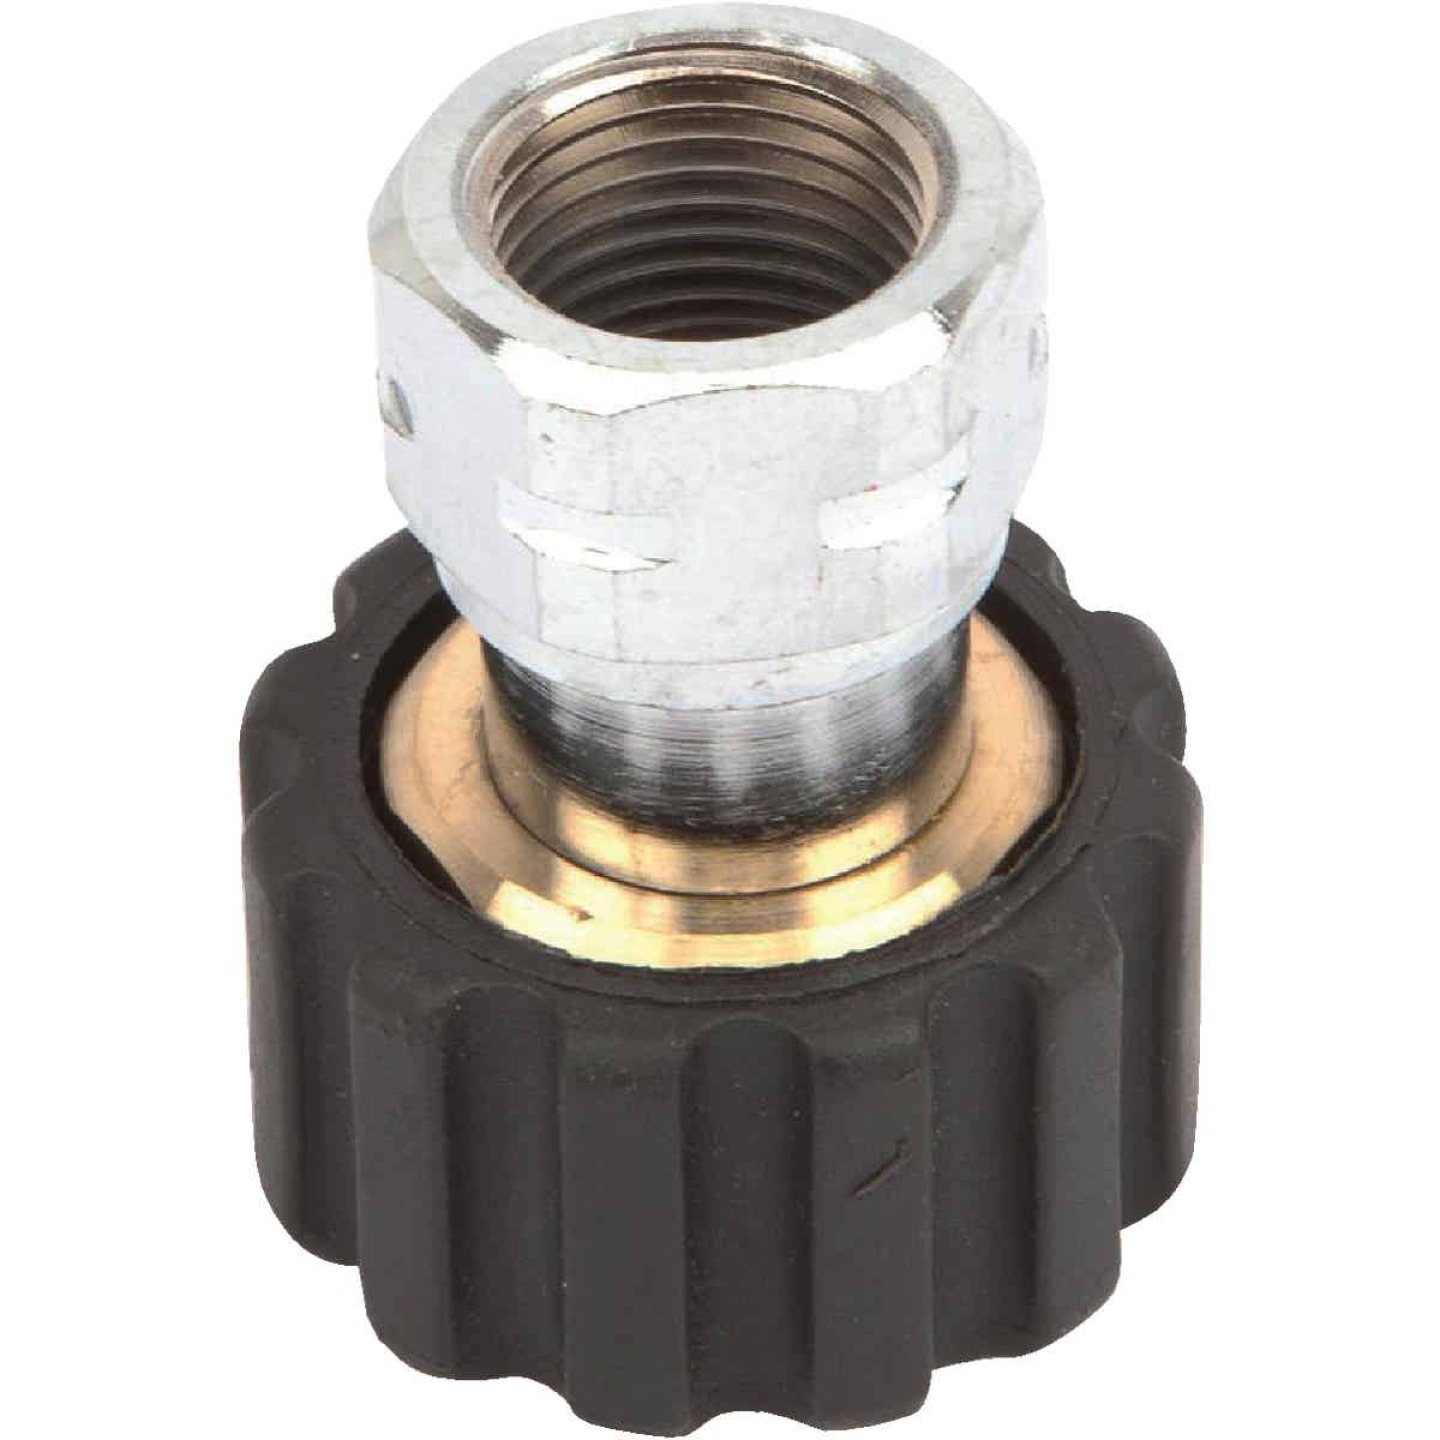 Forney M22Fx 3/8 In. Female Screw Pressure Washer Coupling Image 3